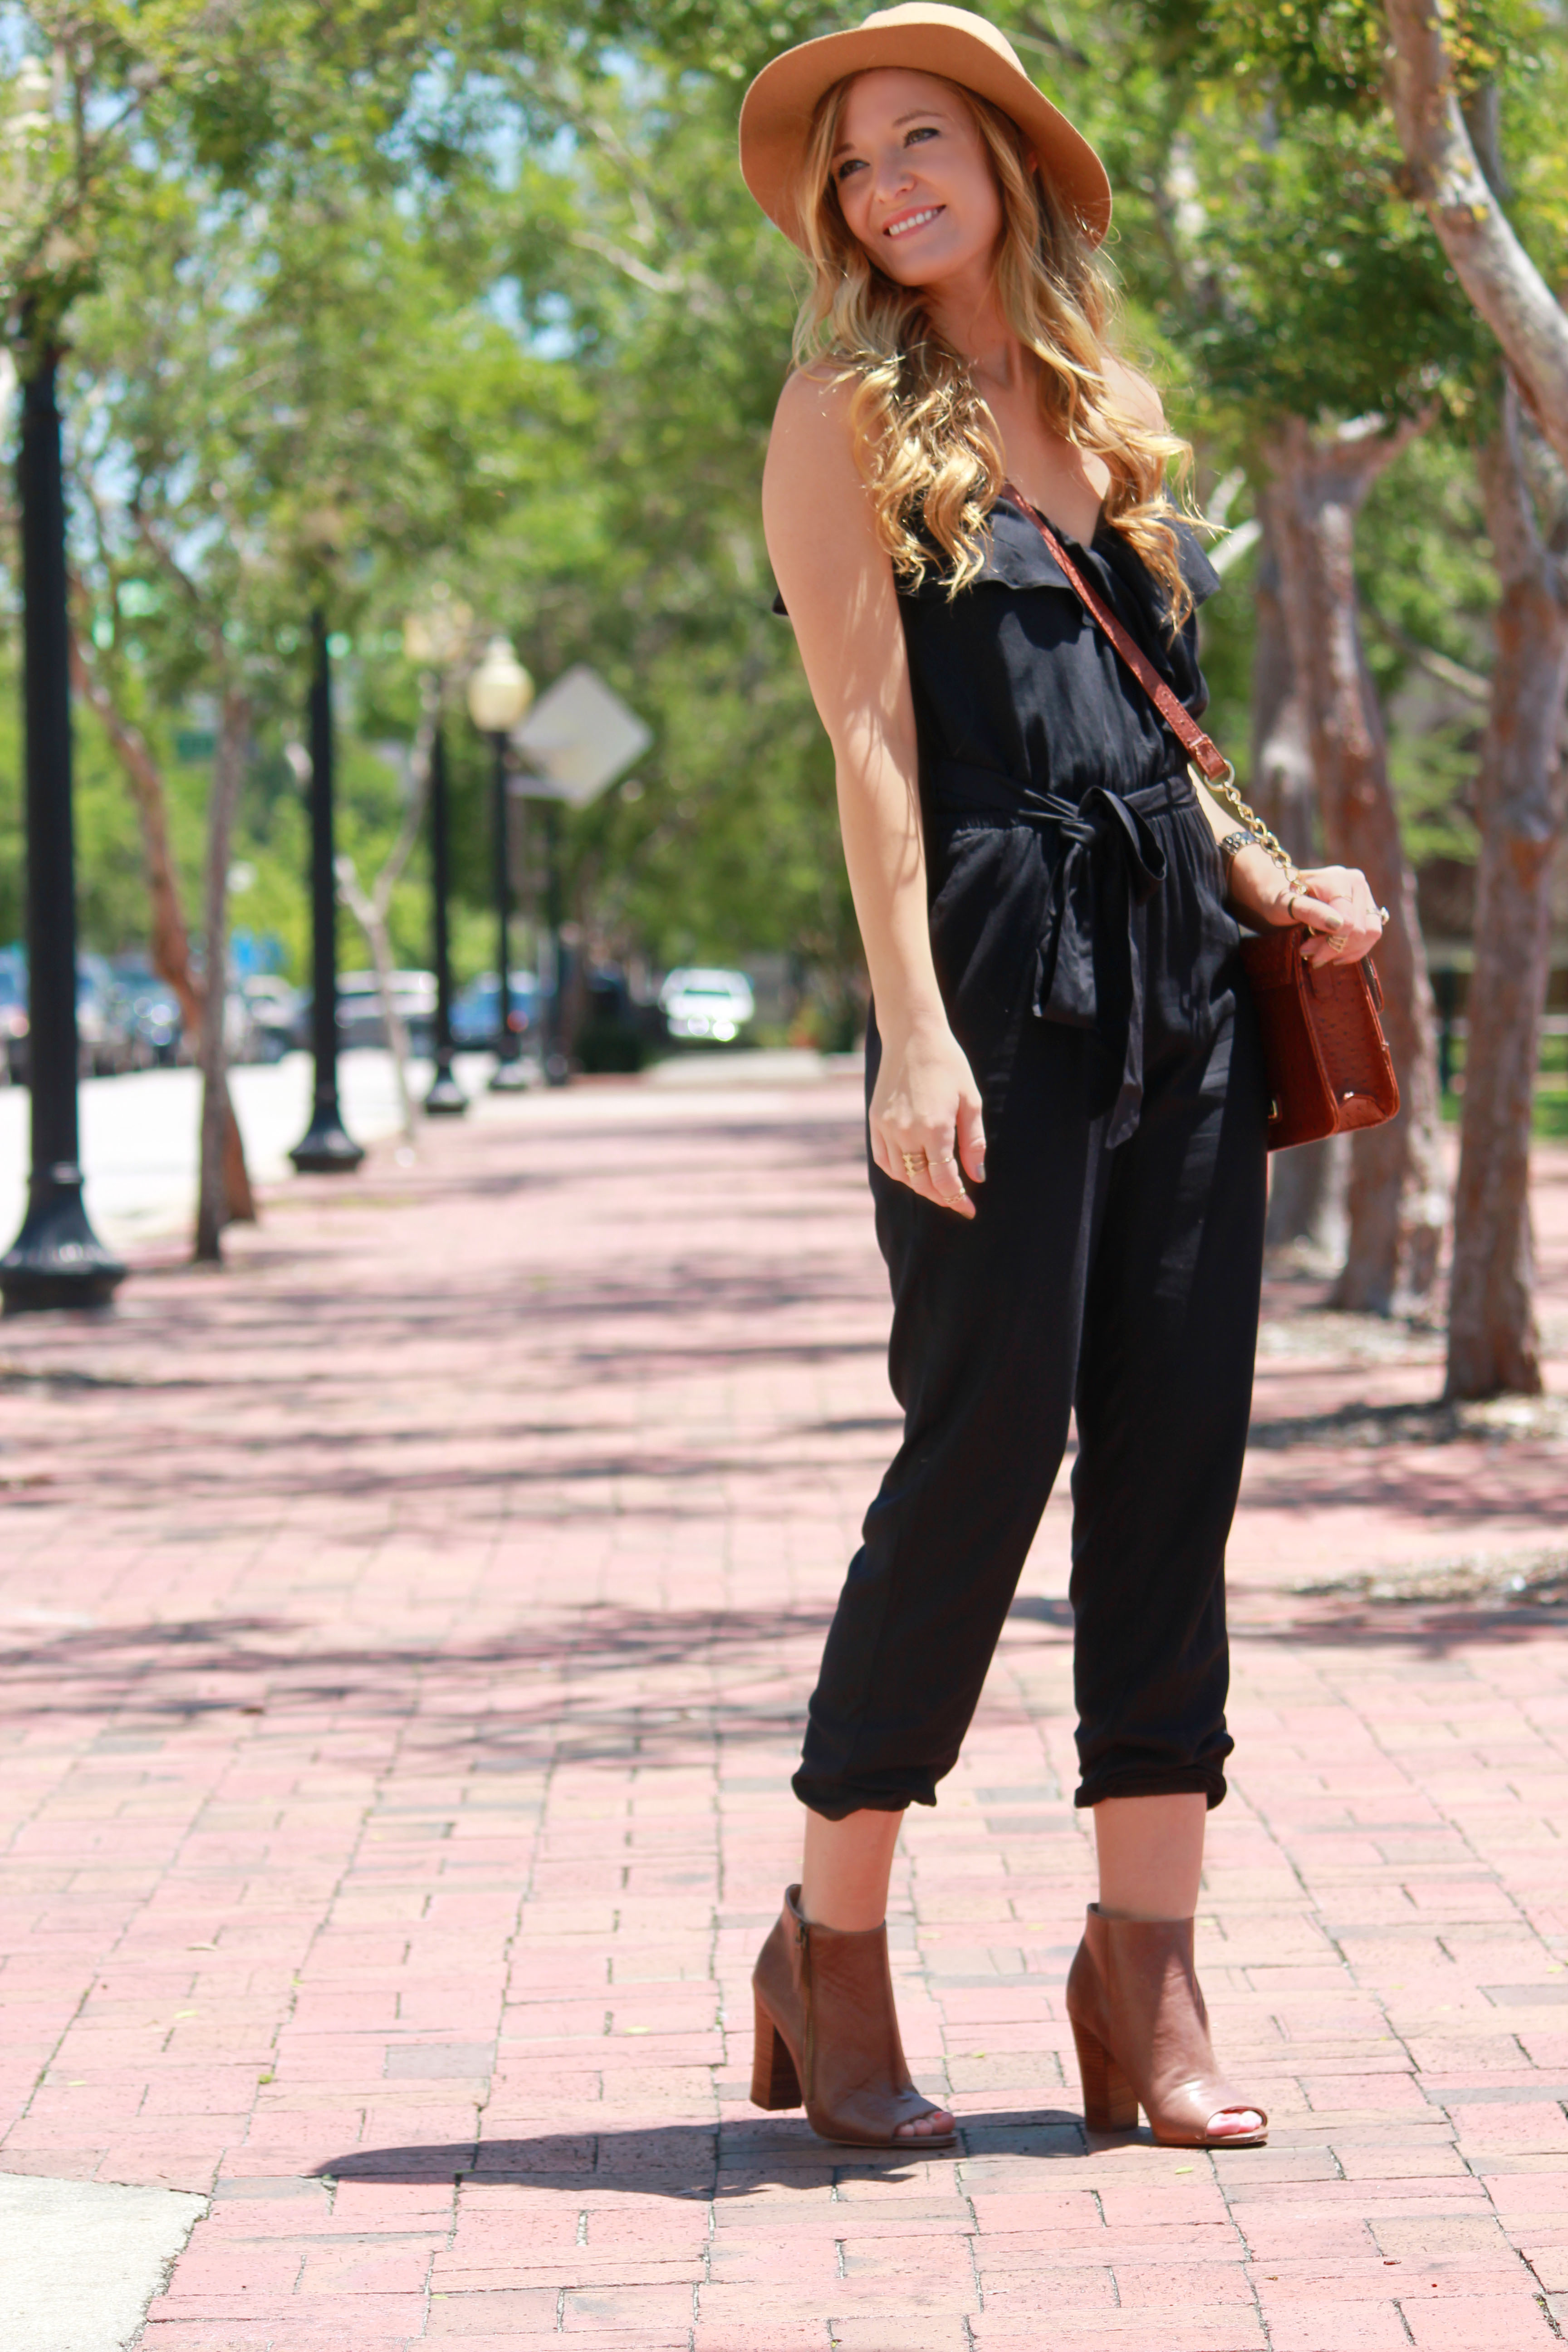 Black and brown outfit, Jumpsuit outfit, romper outfit, american eagle romper, american eagle jumpsuite, dsw booties, dsw boots